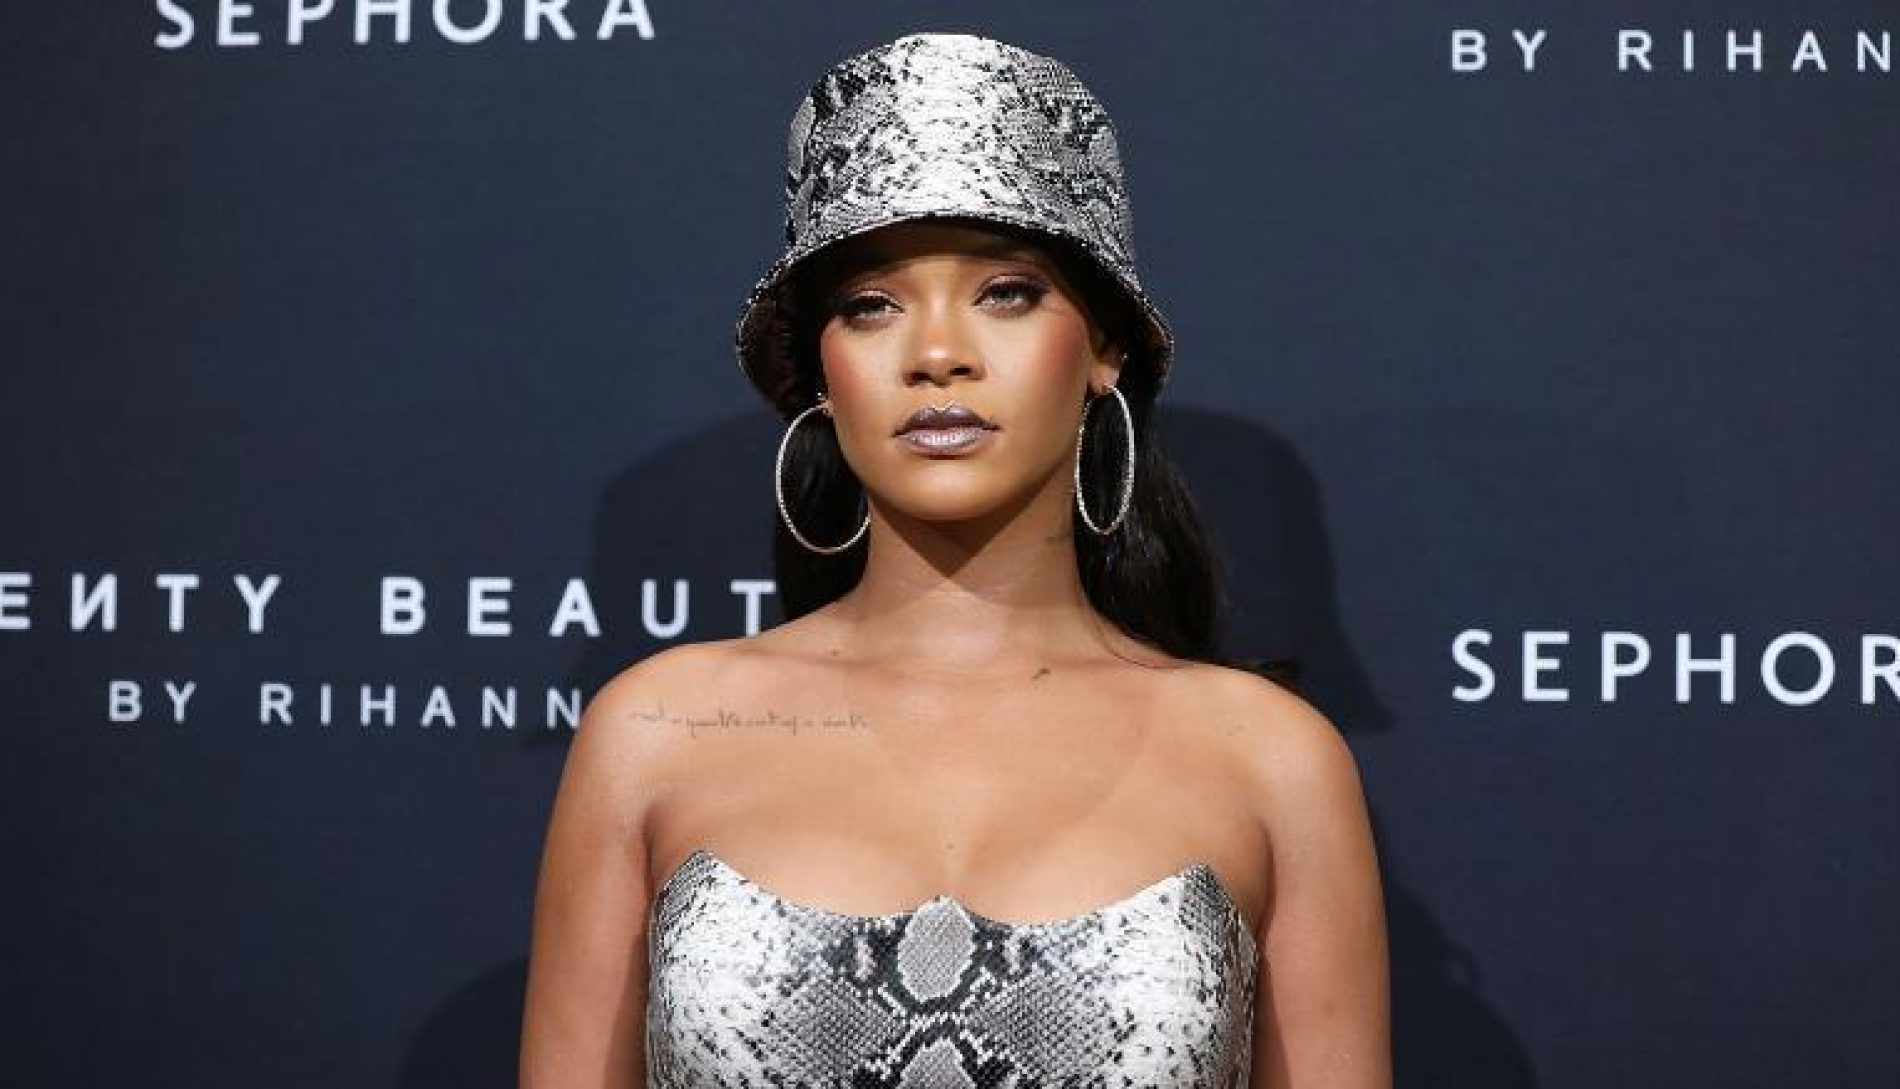 Rihanna Is The World's Wealthiest Female Musician With A $600 Million Net Worth